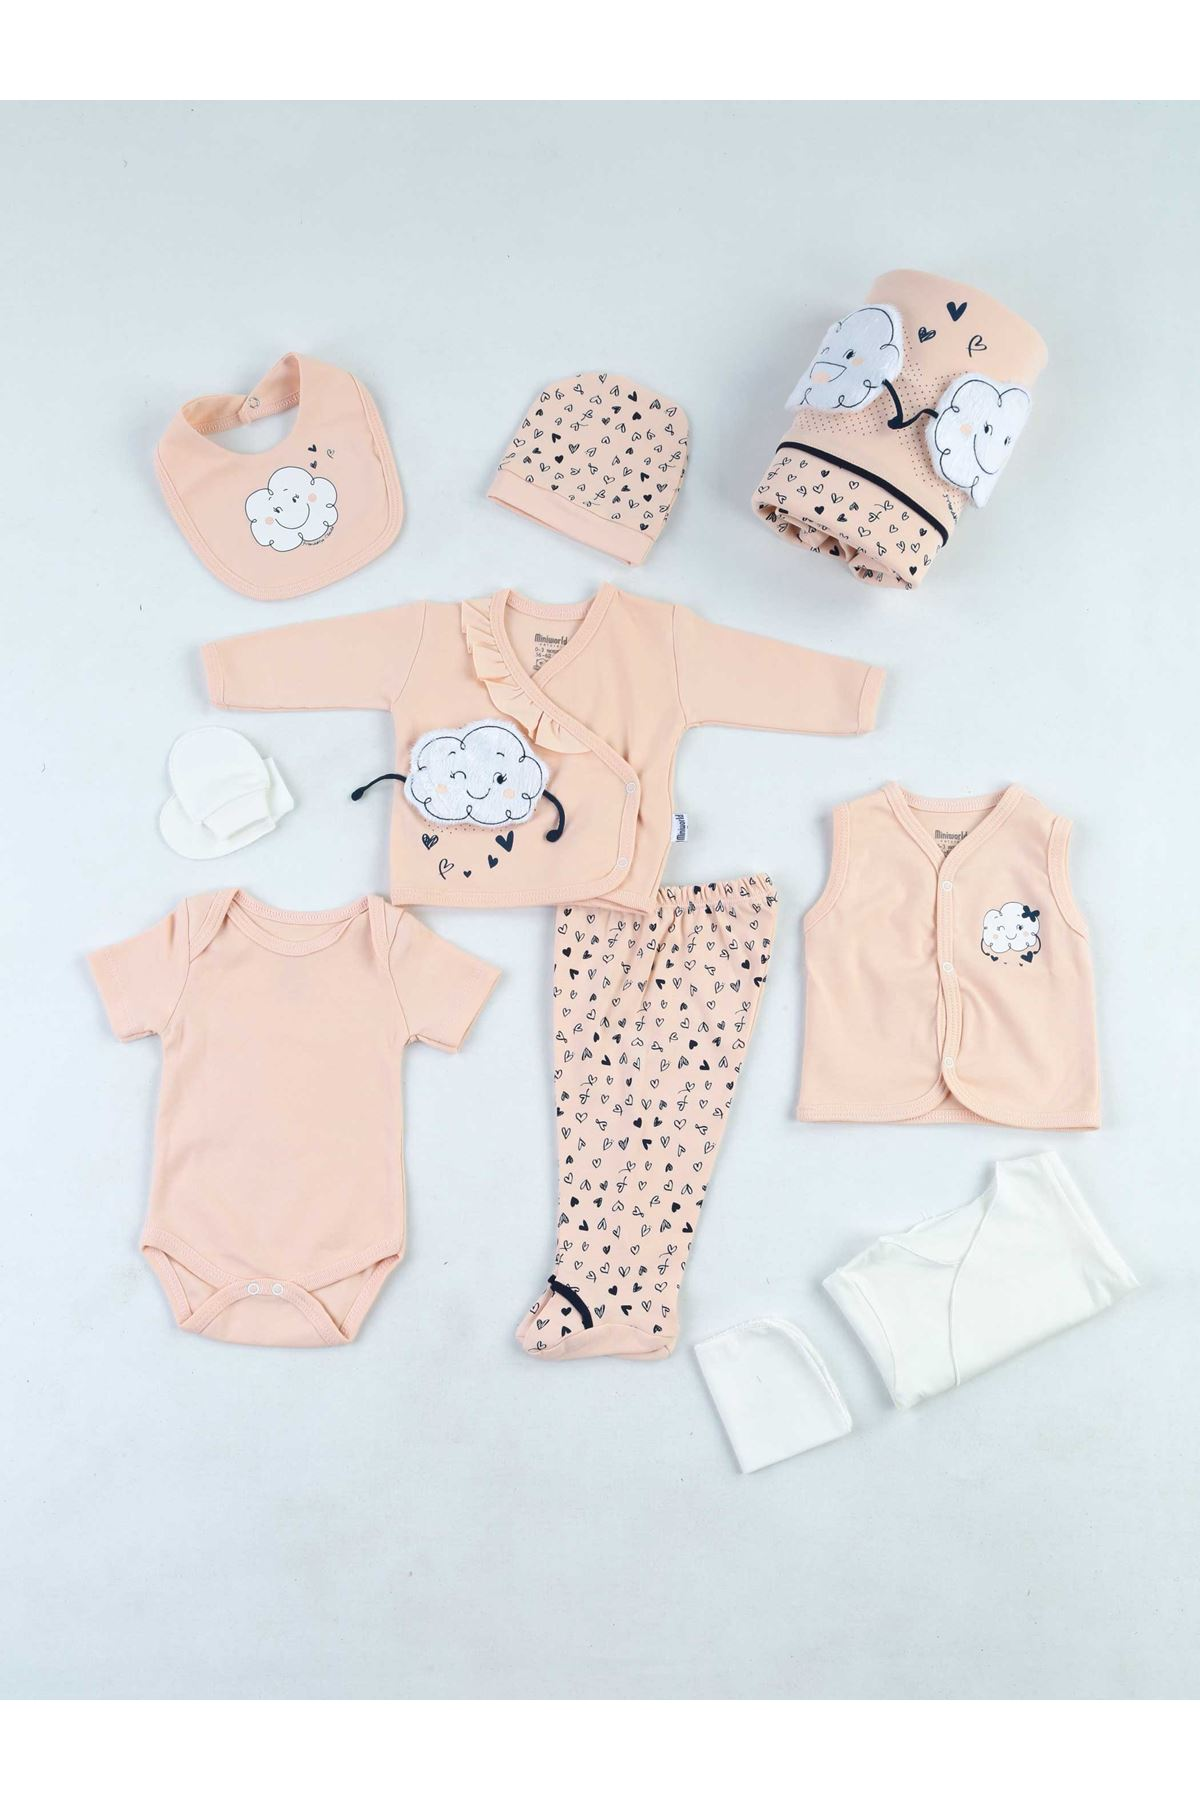 Baby Girl Newborn 10 Piece Set Suit Powder Color Cotton Babies Hospital Outlet Clothing Infants Daily Comfortable Use Models